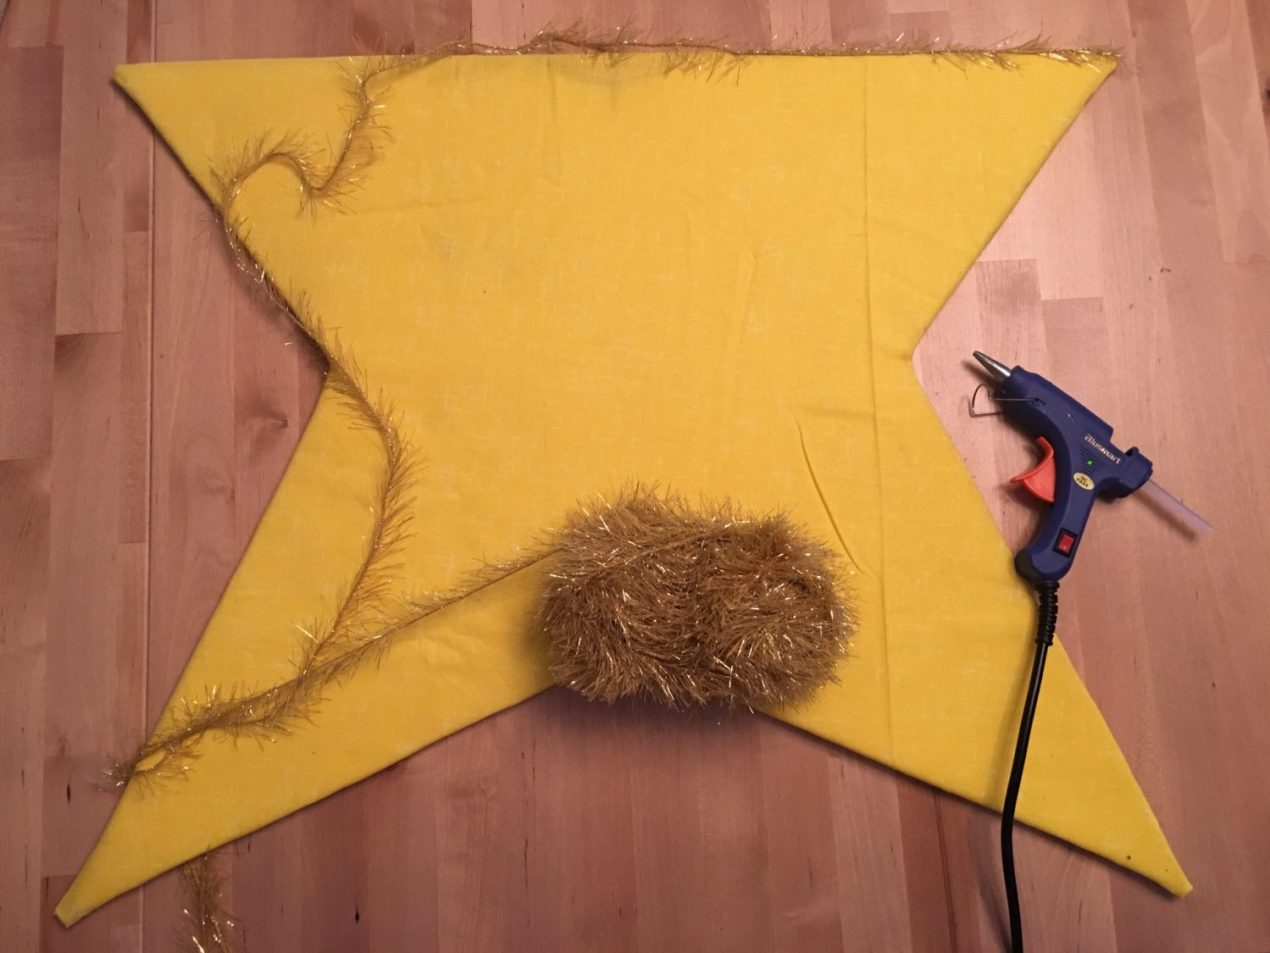 Decorating the DIY star with gold yarn